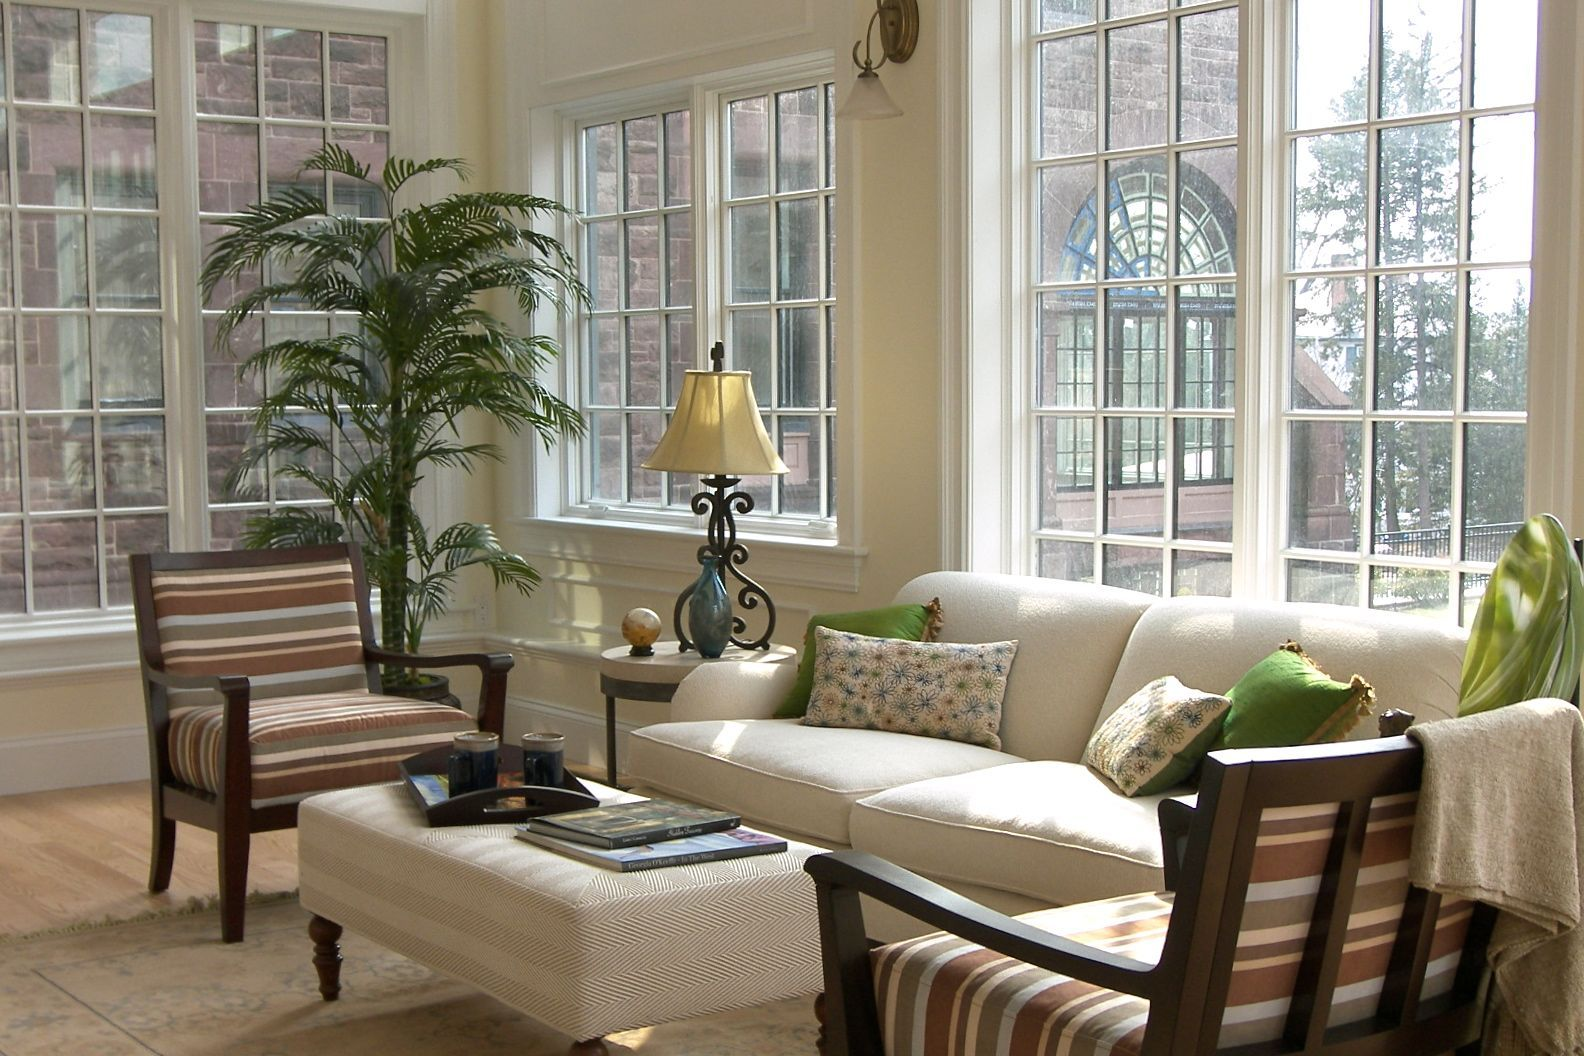 Luxury Indoor Sunroom Furniture Ideas